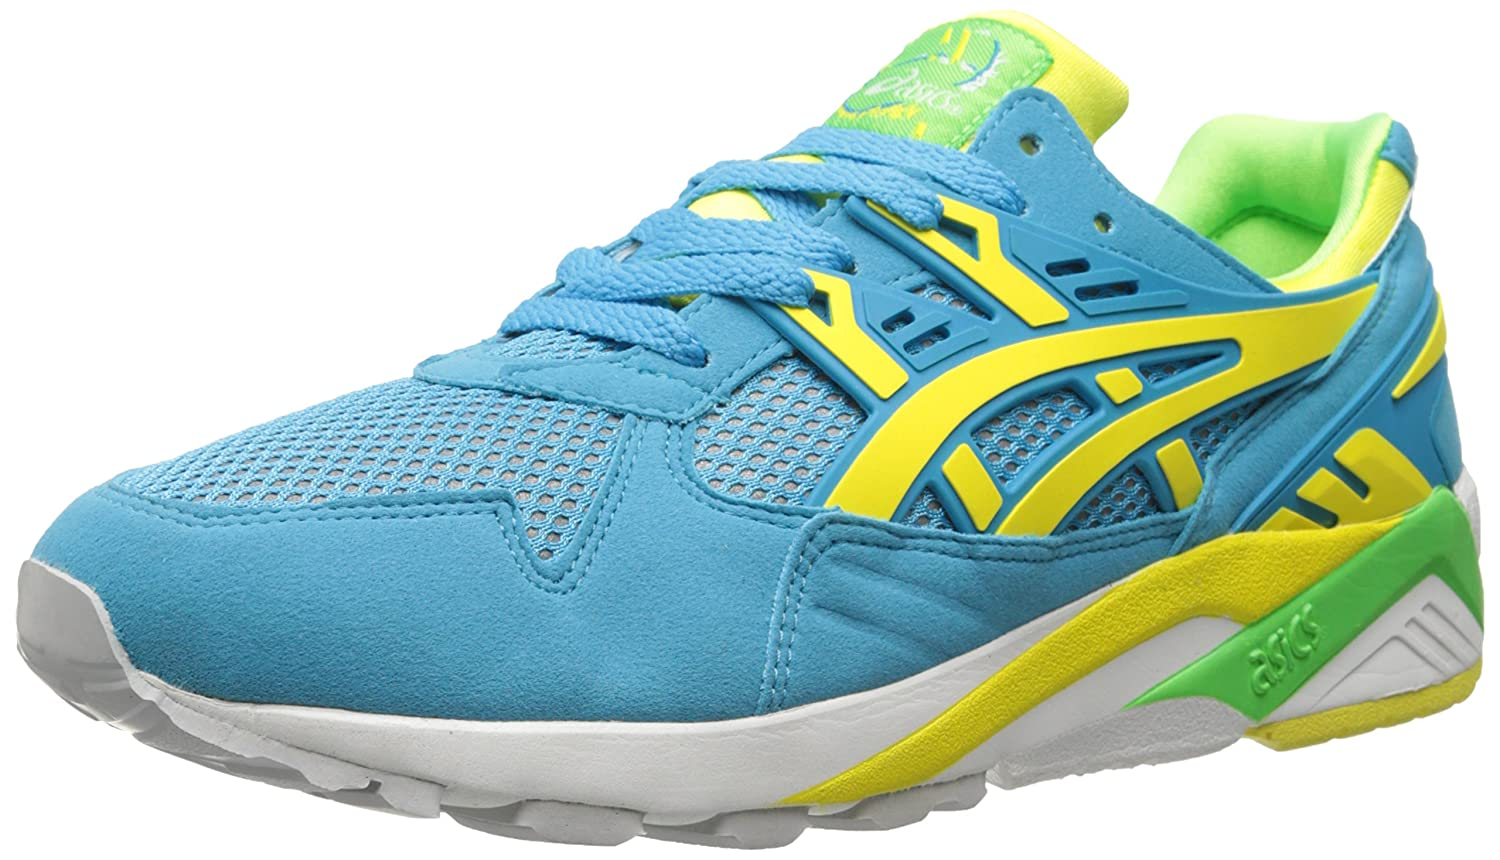 Asics Men's Gel-Kayano Trainer Retro Turnschuhe